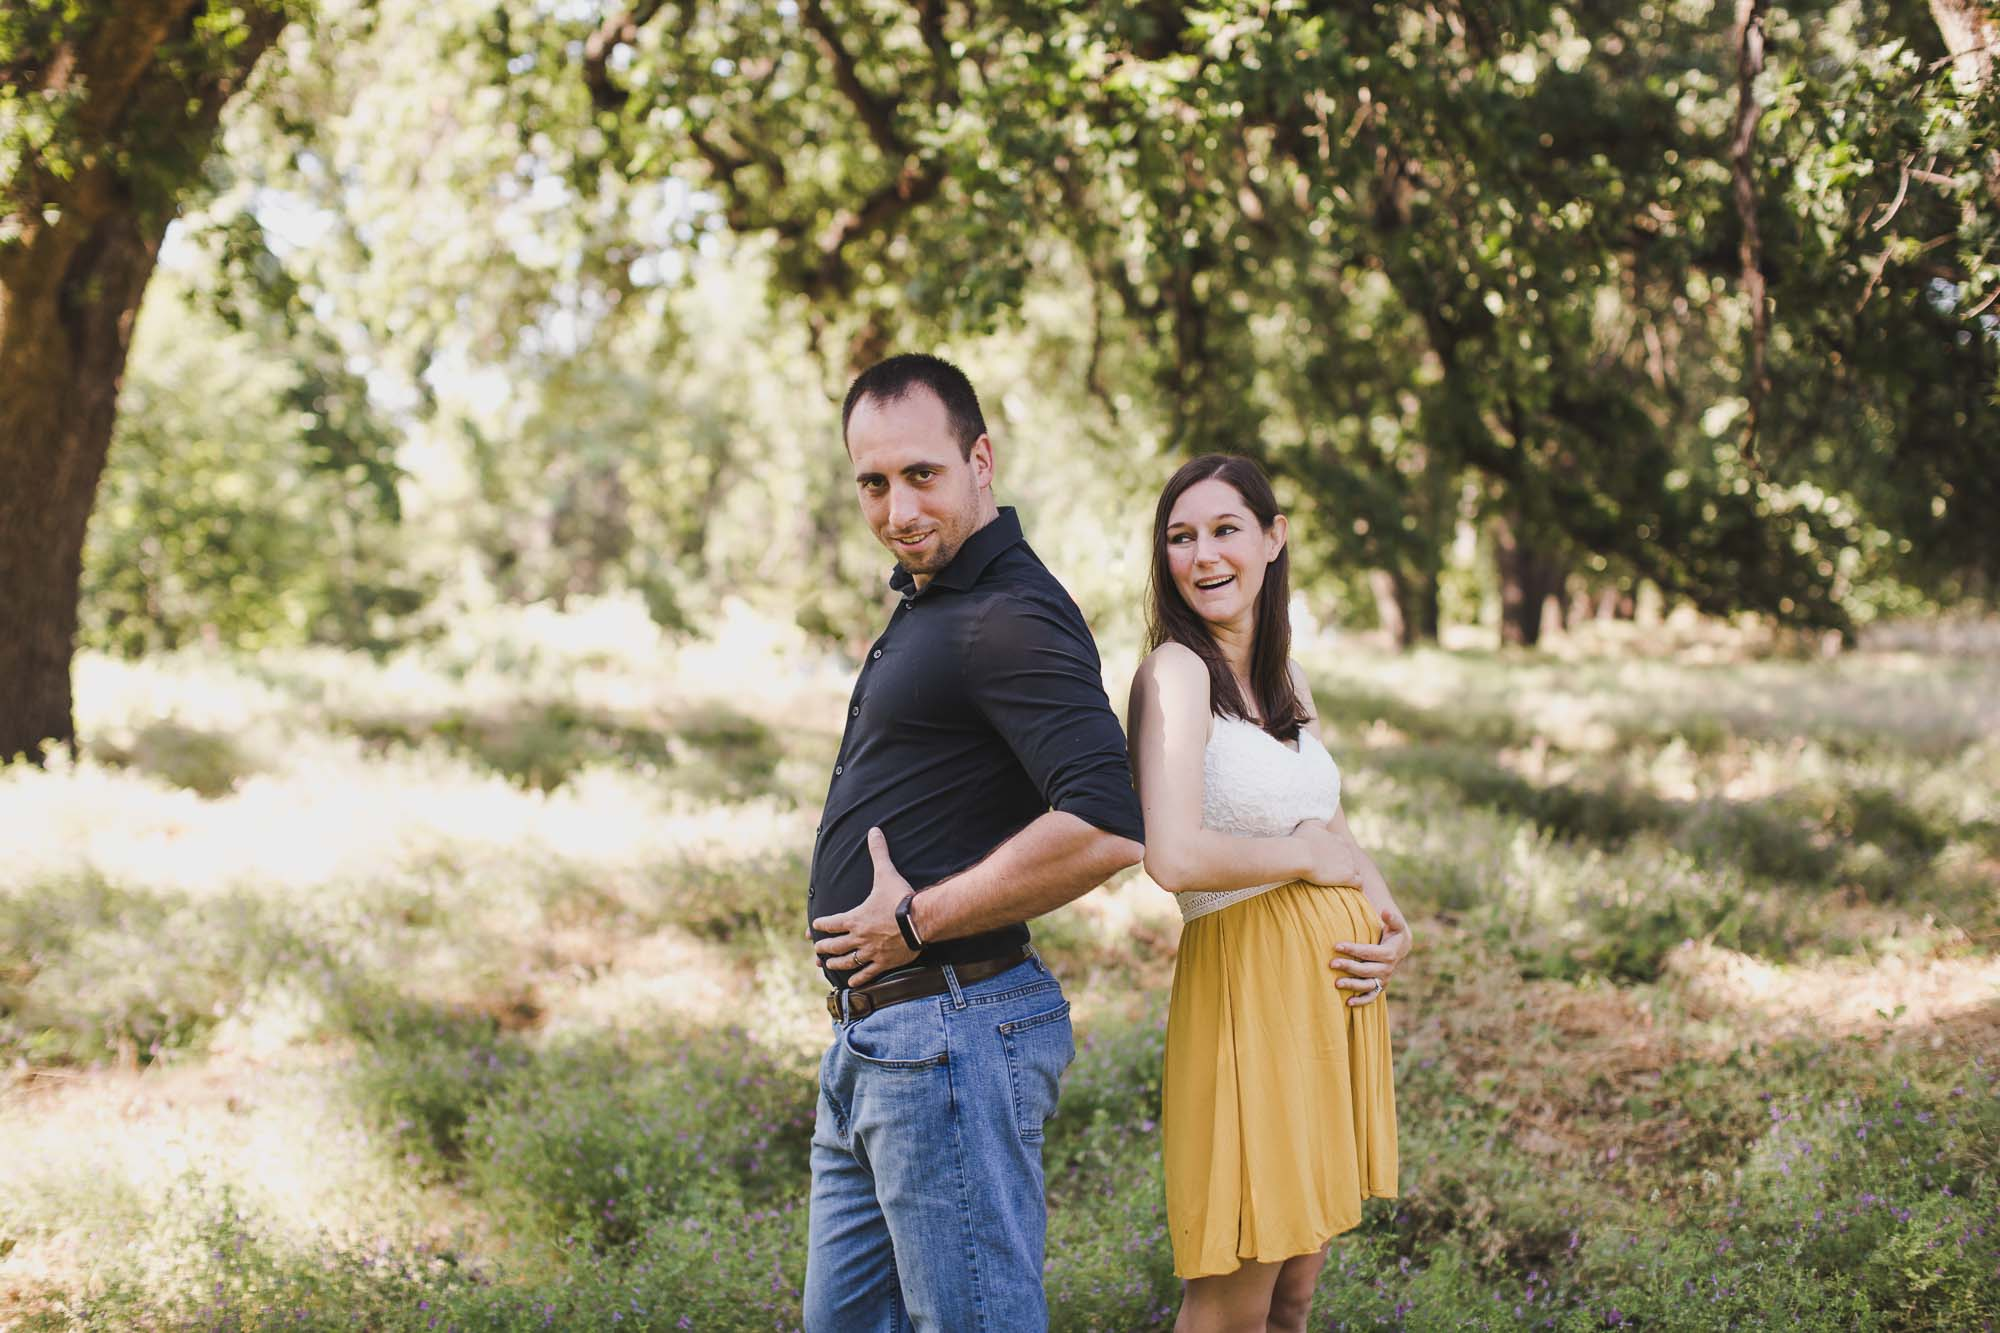 Chico_photographer_AVH_Photography_maternity_photos_family_photography_00010.jpg